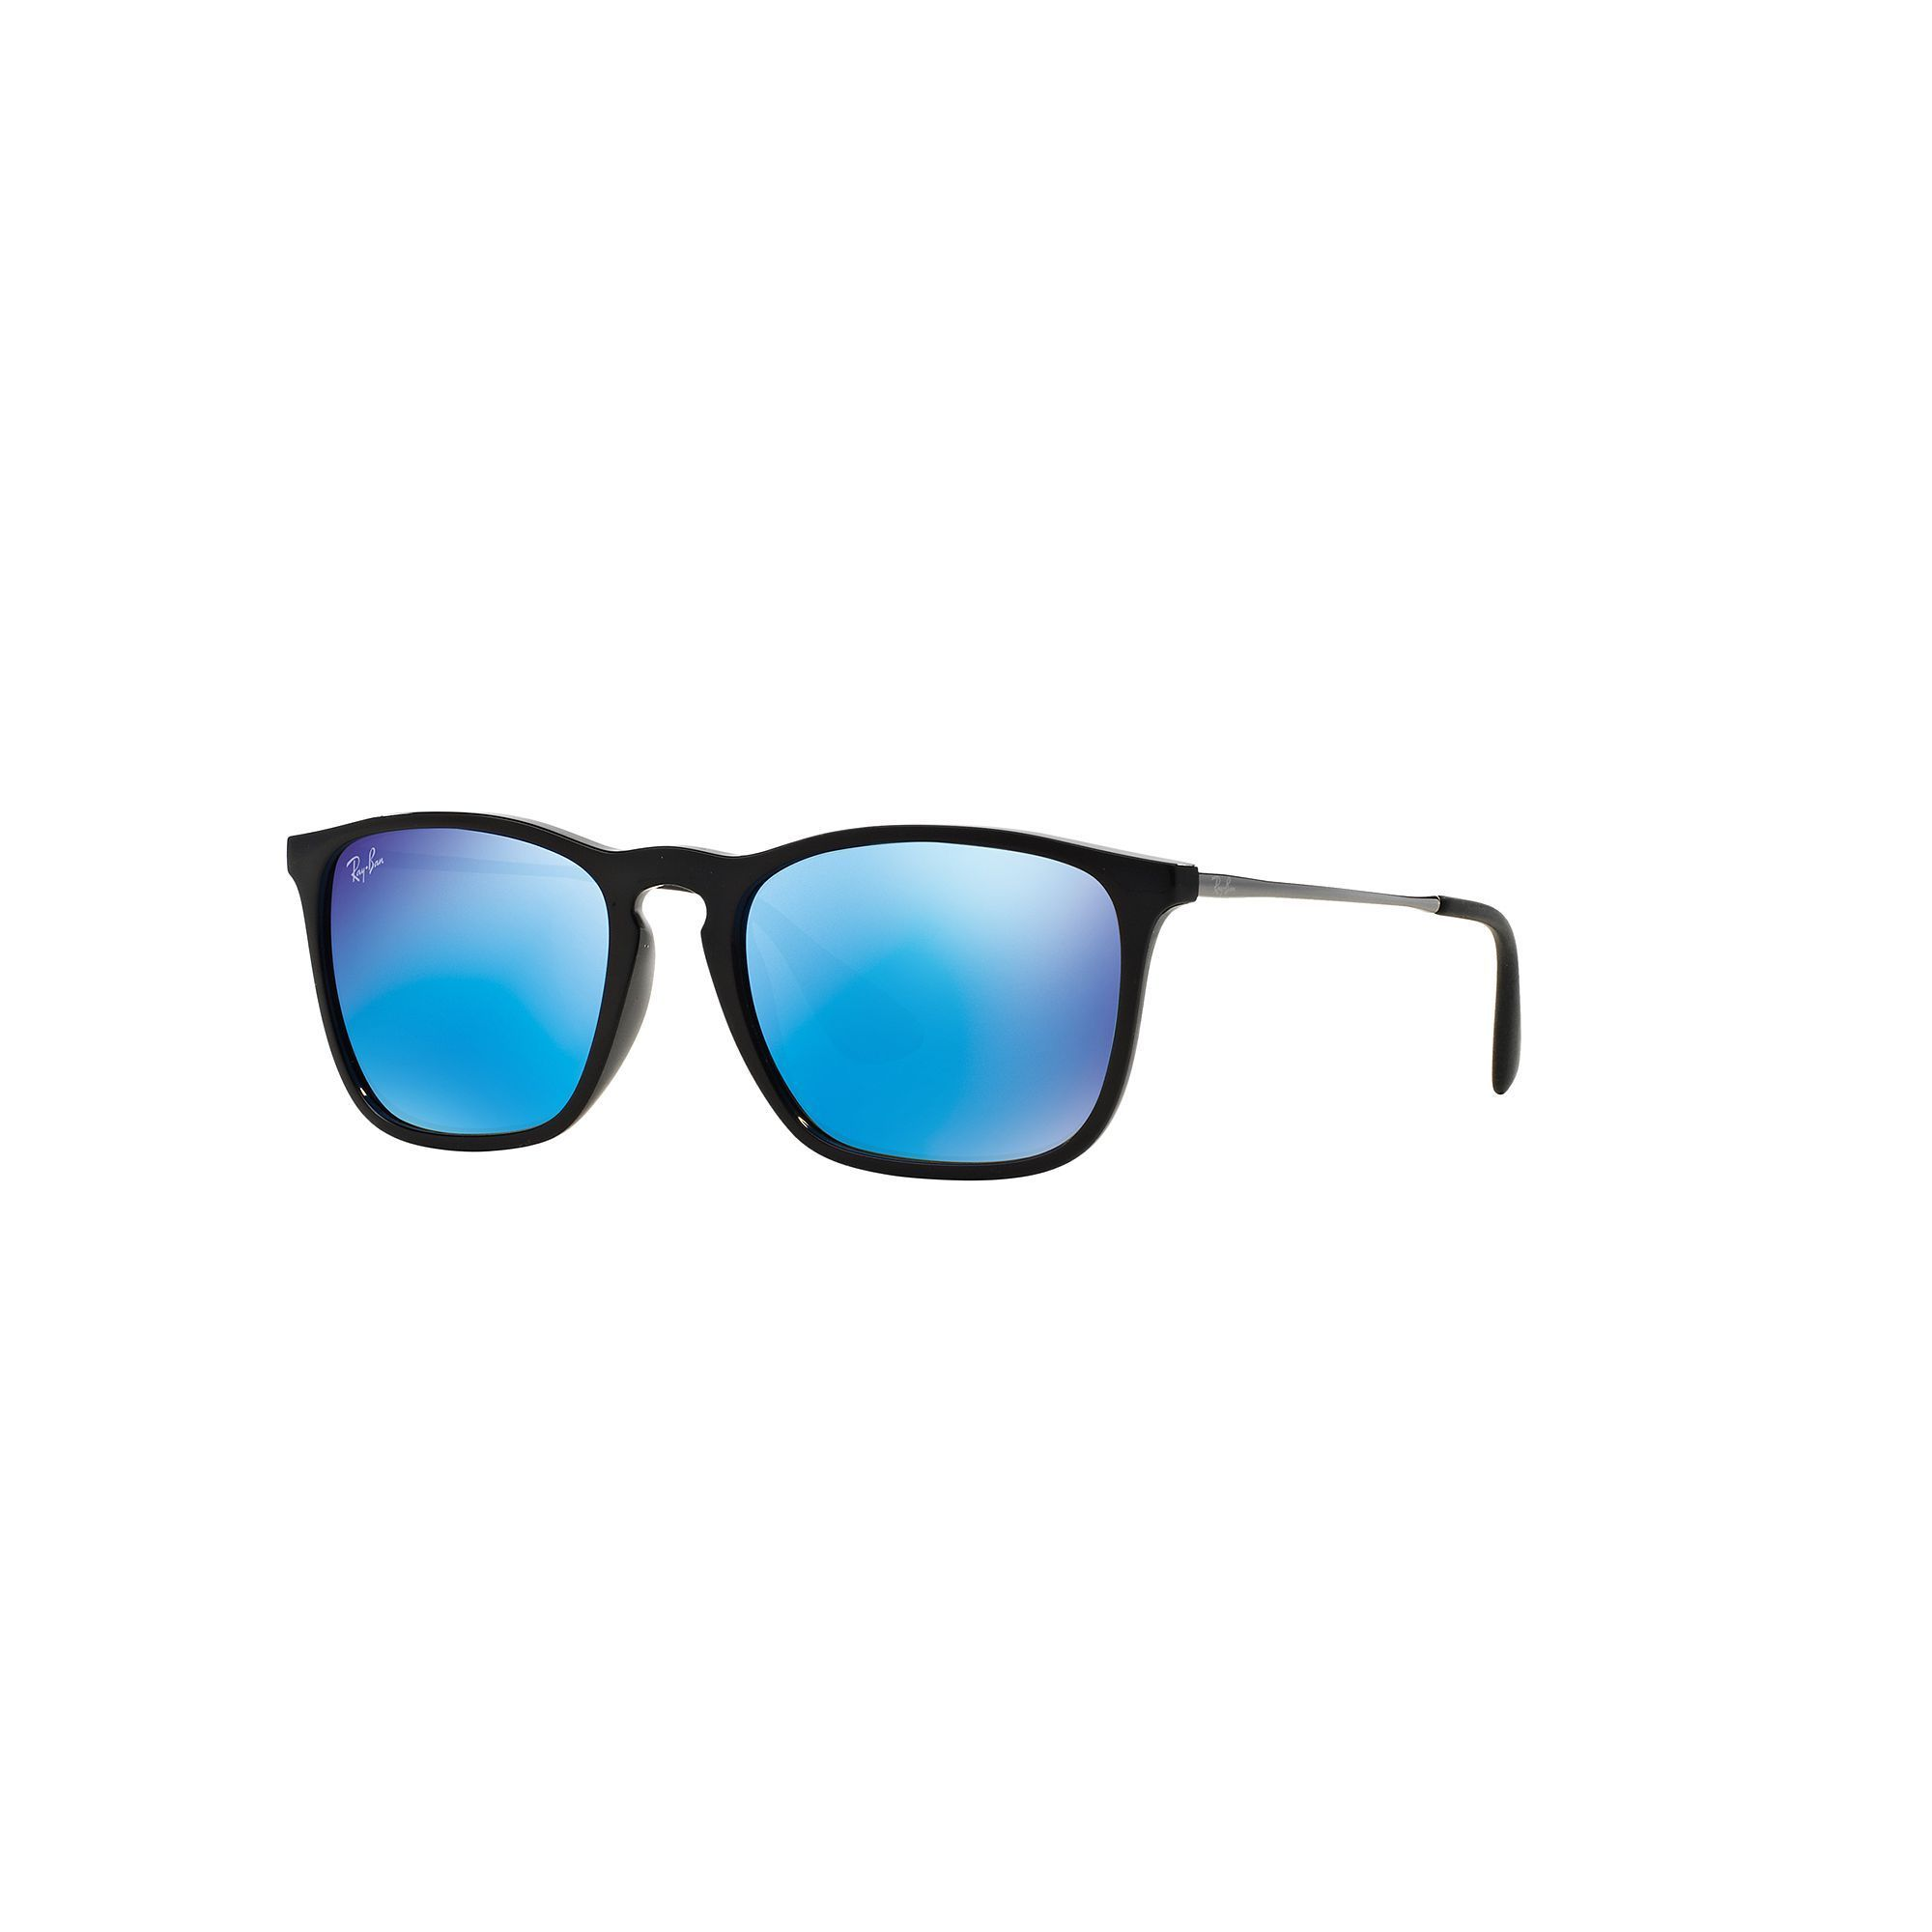 Ray-Ban Chris RB4187 54mm Square Mirror Sunglasses, Women\'s, Med ...